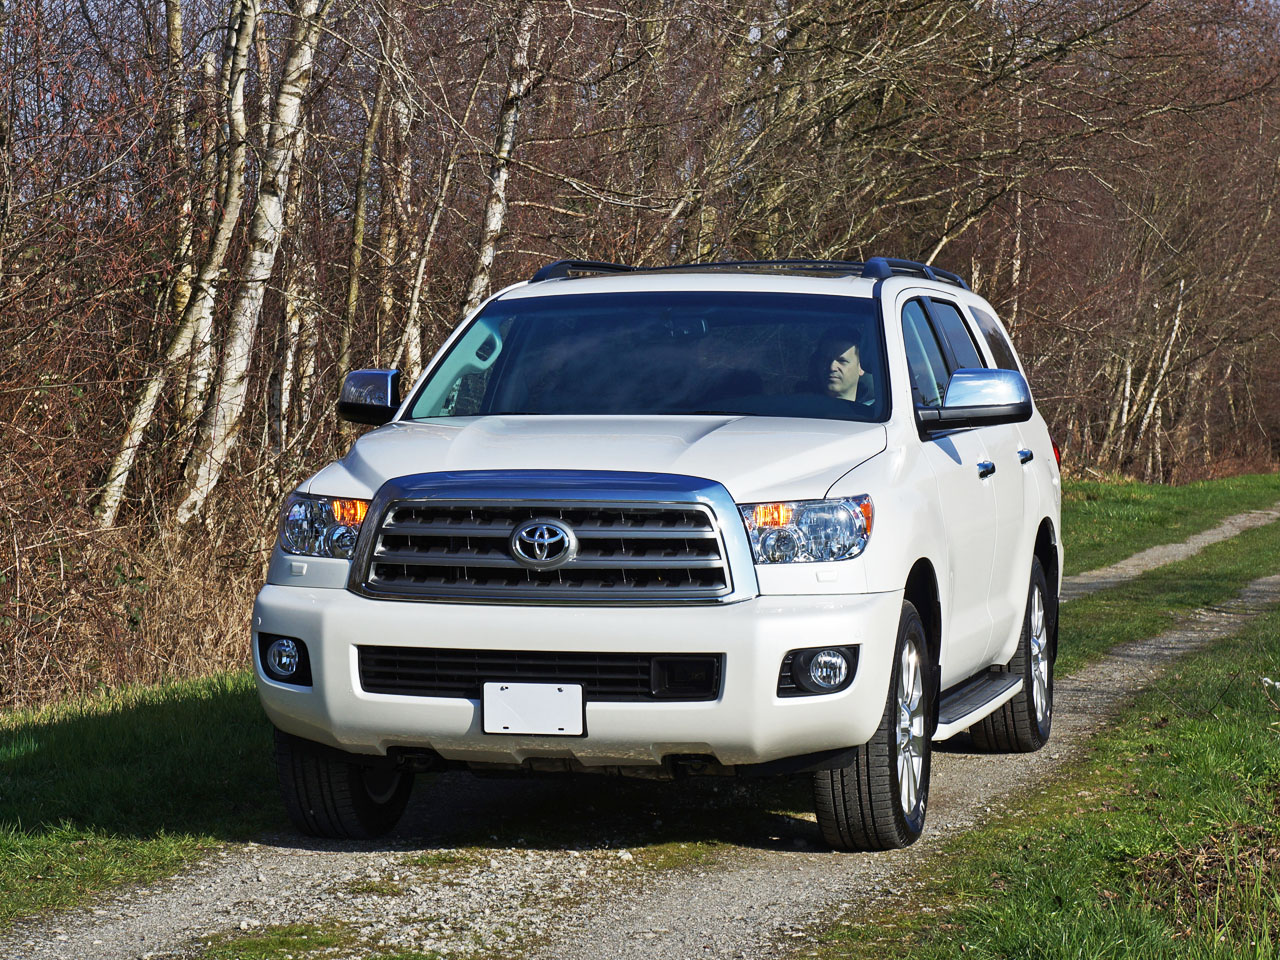 2015 toyota sequoia platinum road test review carcostcanada. Black Bedroom Furniture Sets. Home Design Ideas